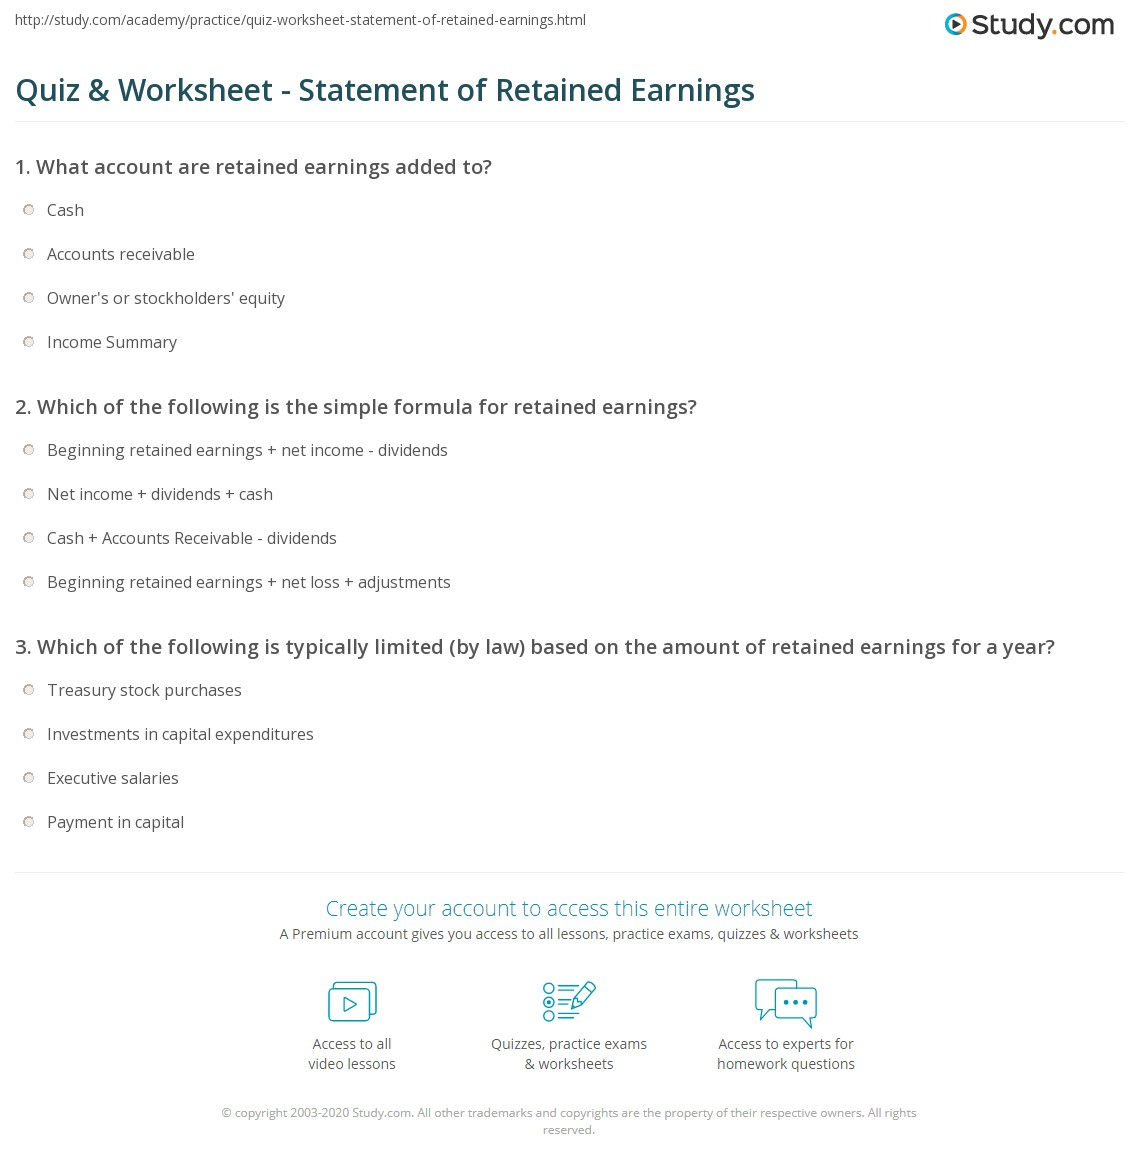 quiz worksheet statement of retained earnings. Black Bedroom Furniture Sets. Home Design Ideas